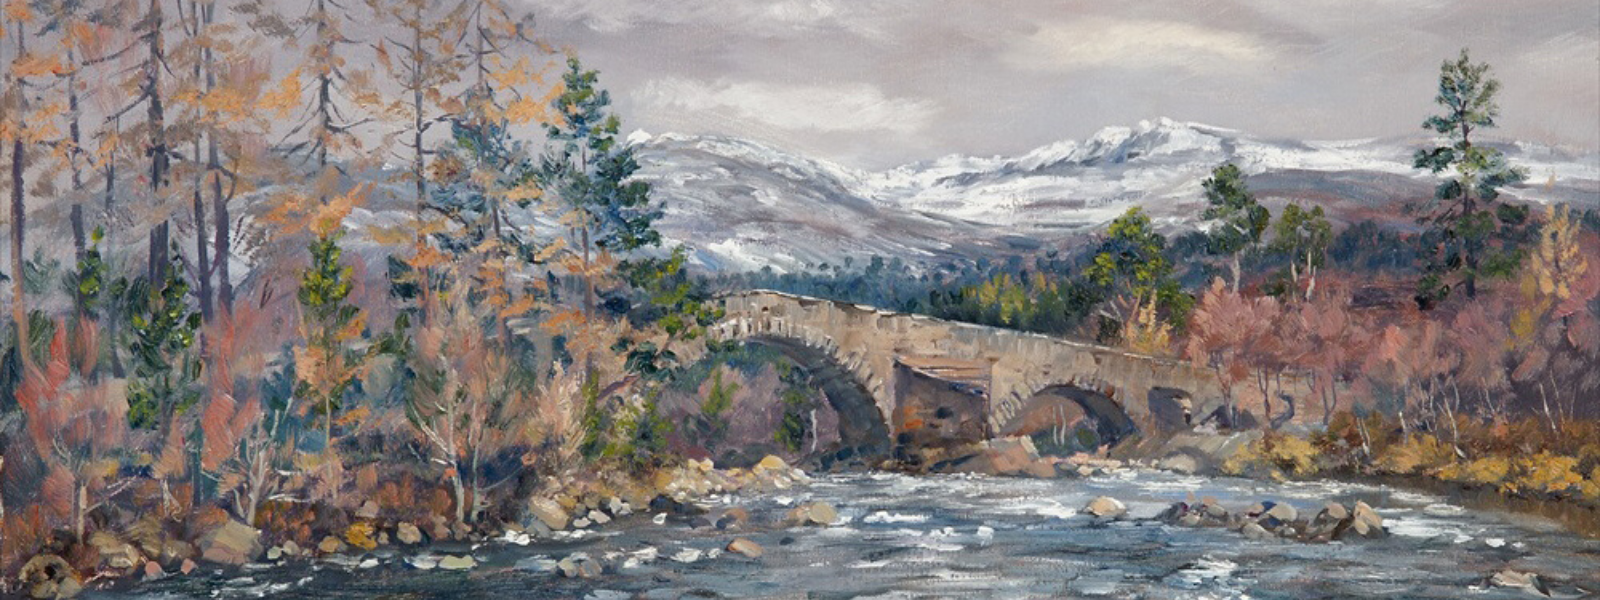 Original Scottish Fine Art and Signed limited Prints for Sale by Scottish artist Howard Butterworth Scottish Art Gallery The Butterworth gallery in Royal Deeside Scotland.